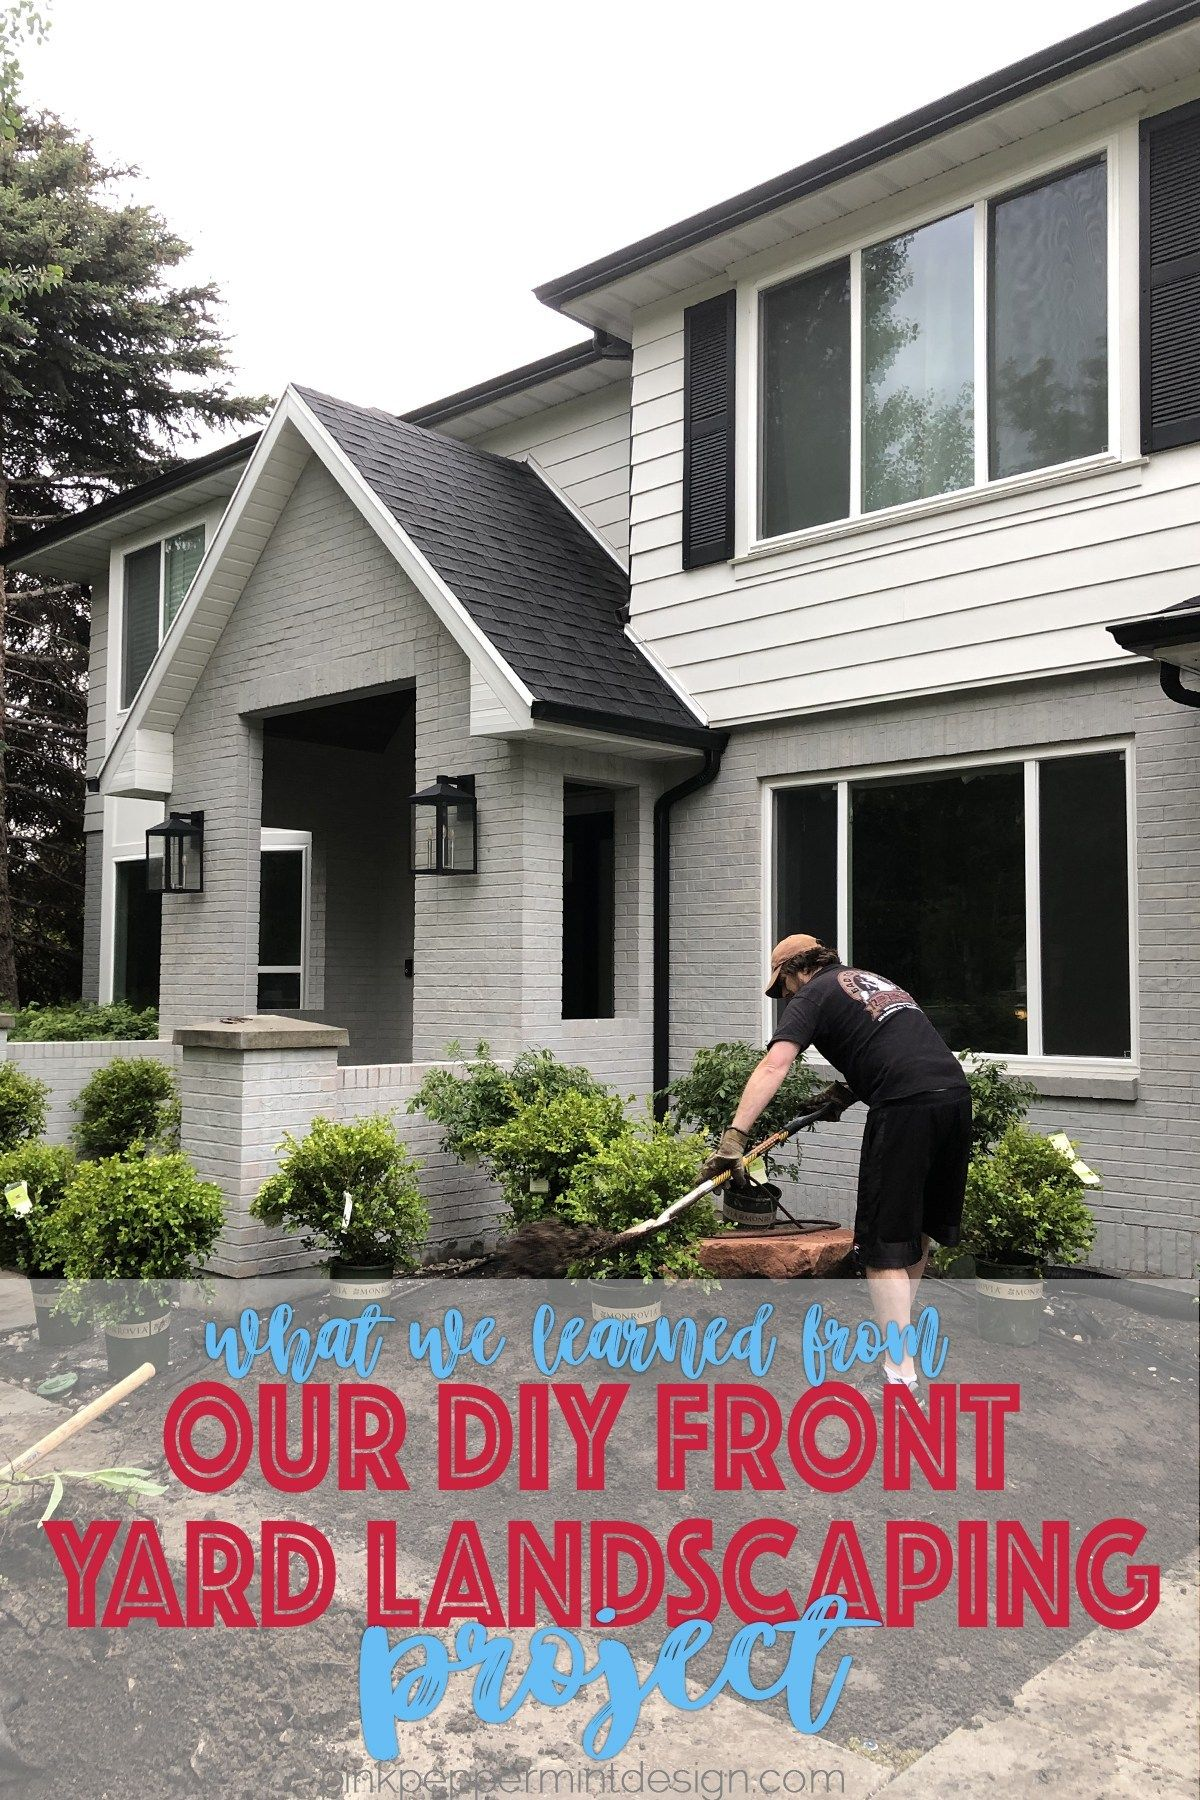 Diy Front Yard Landscaping Ideas On A Budget With Images Front Yard Landscaping Yard Landscaping Front Yard